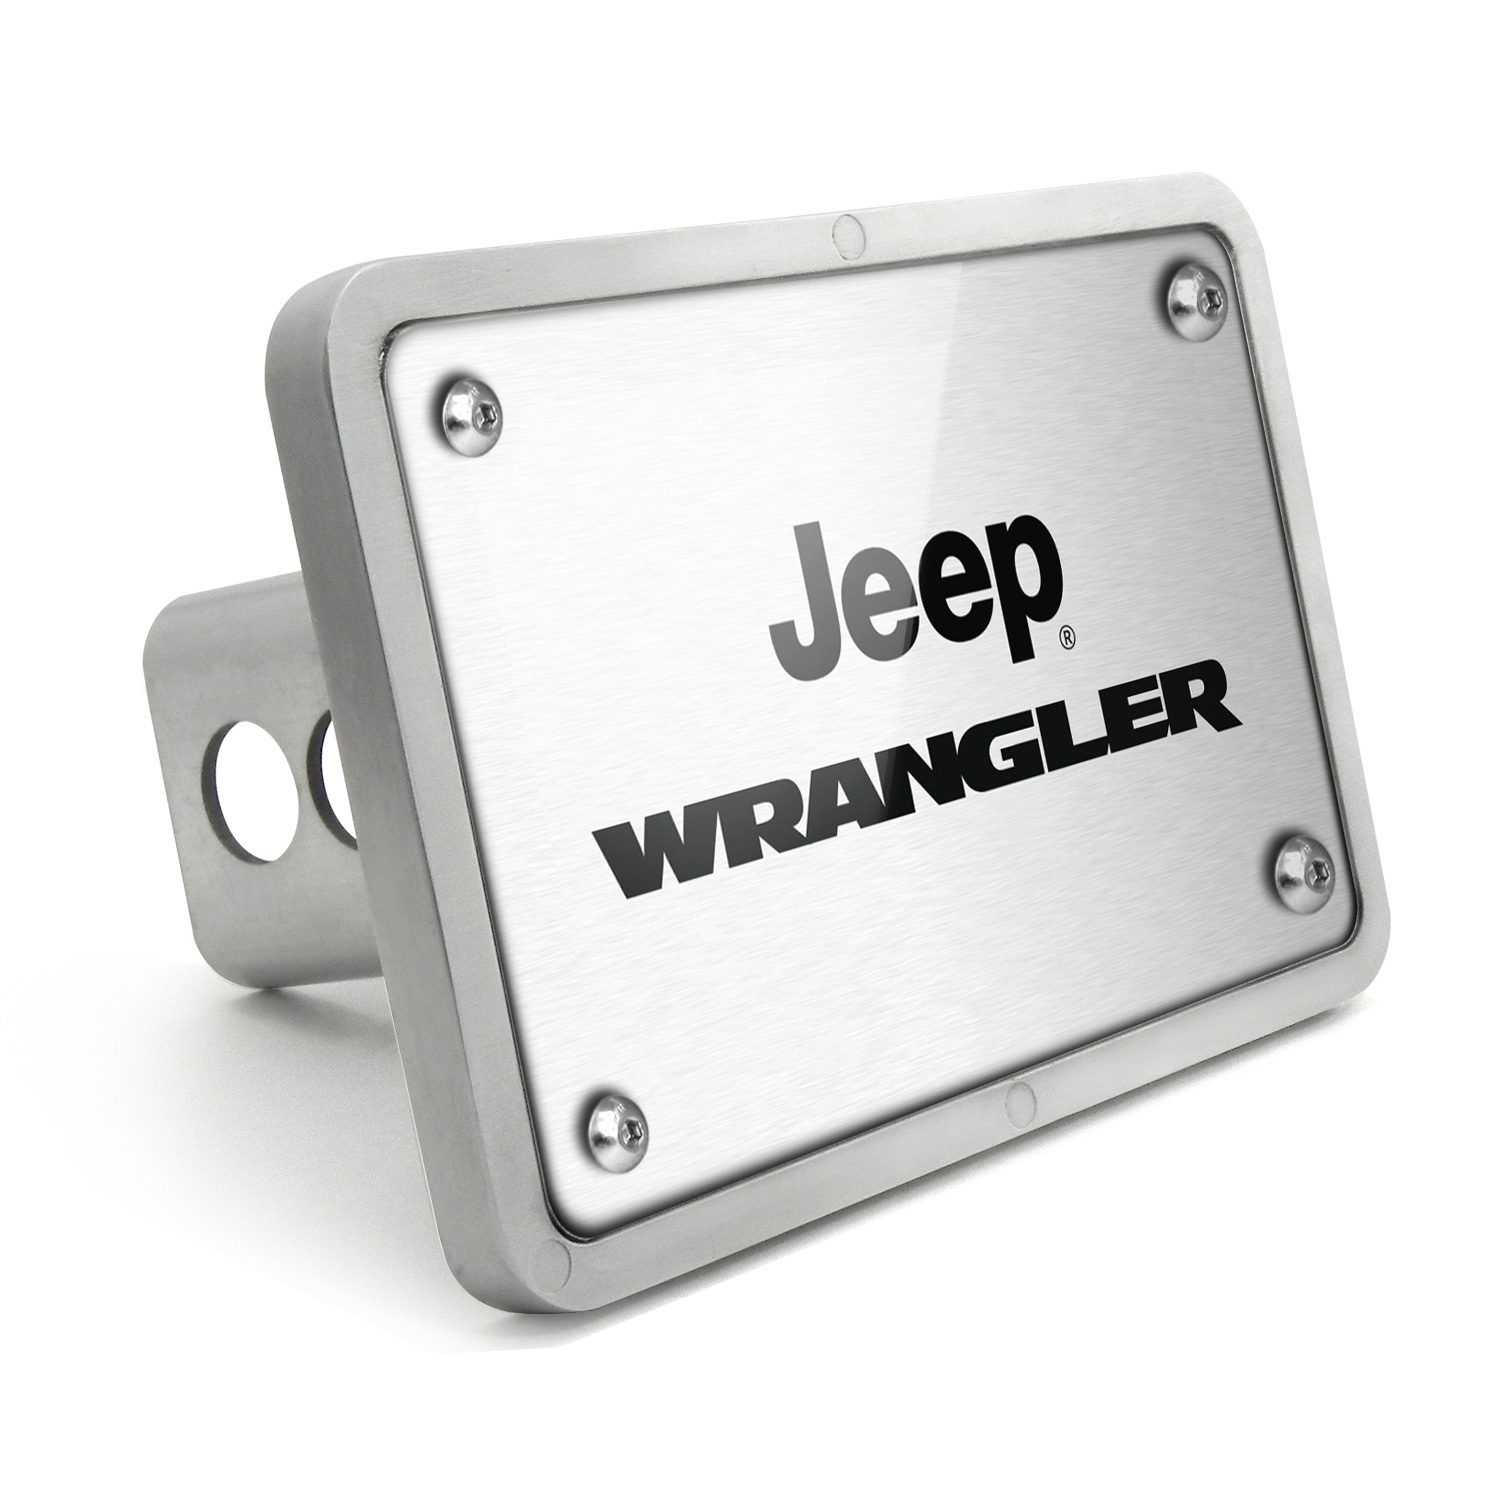 Jeep Wrangler UV Graphic Brushed Silver Billet Aluminum 2 inch Tow Hitch Cover